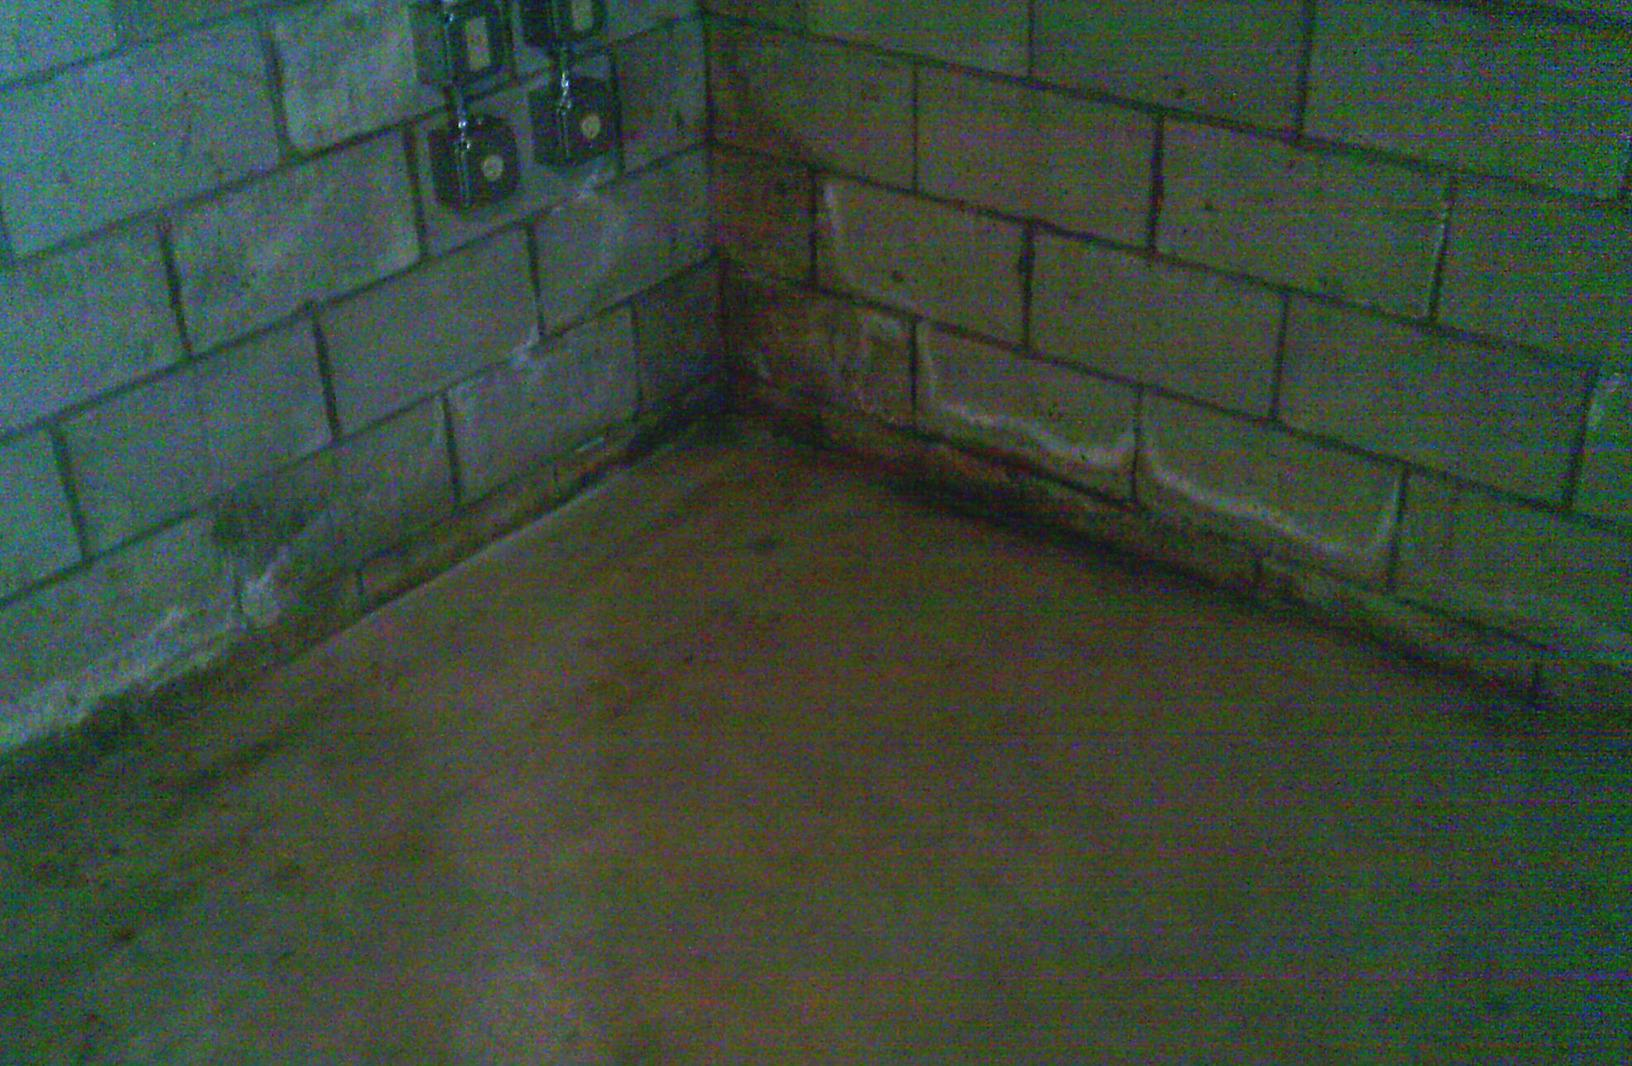 Signs of repeated water intrusion are evident by the marks in the corner and along the perimeter of the foundation floor.